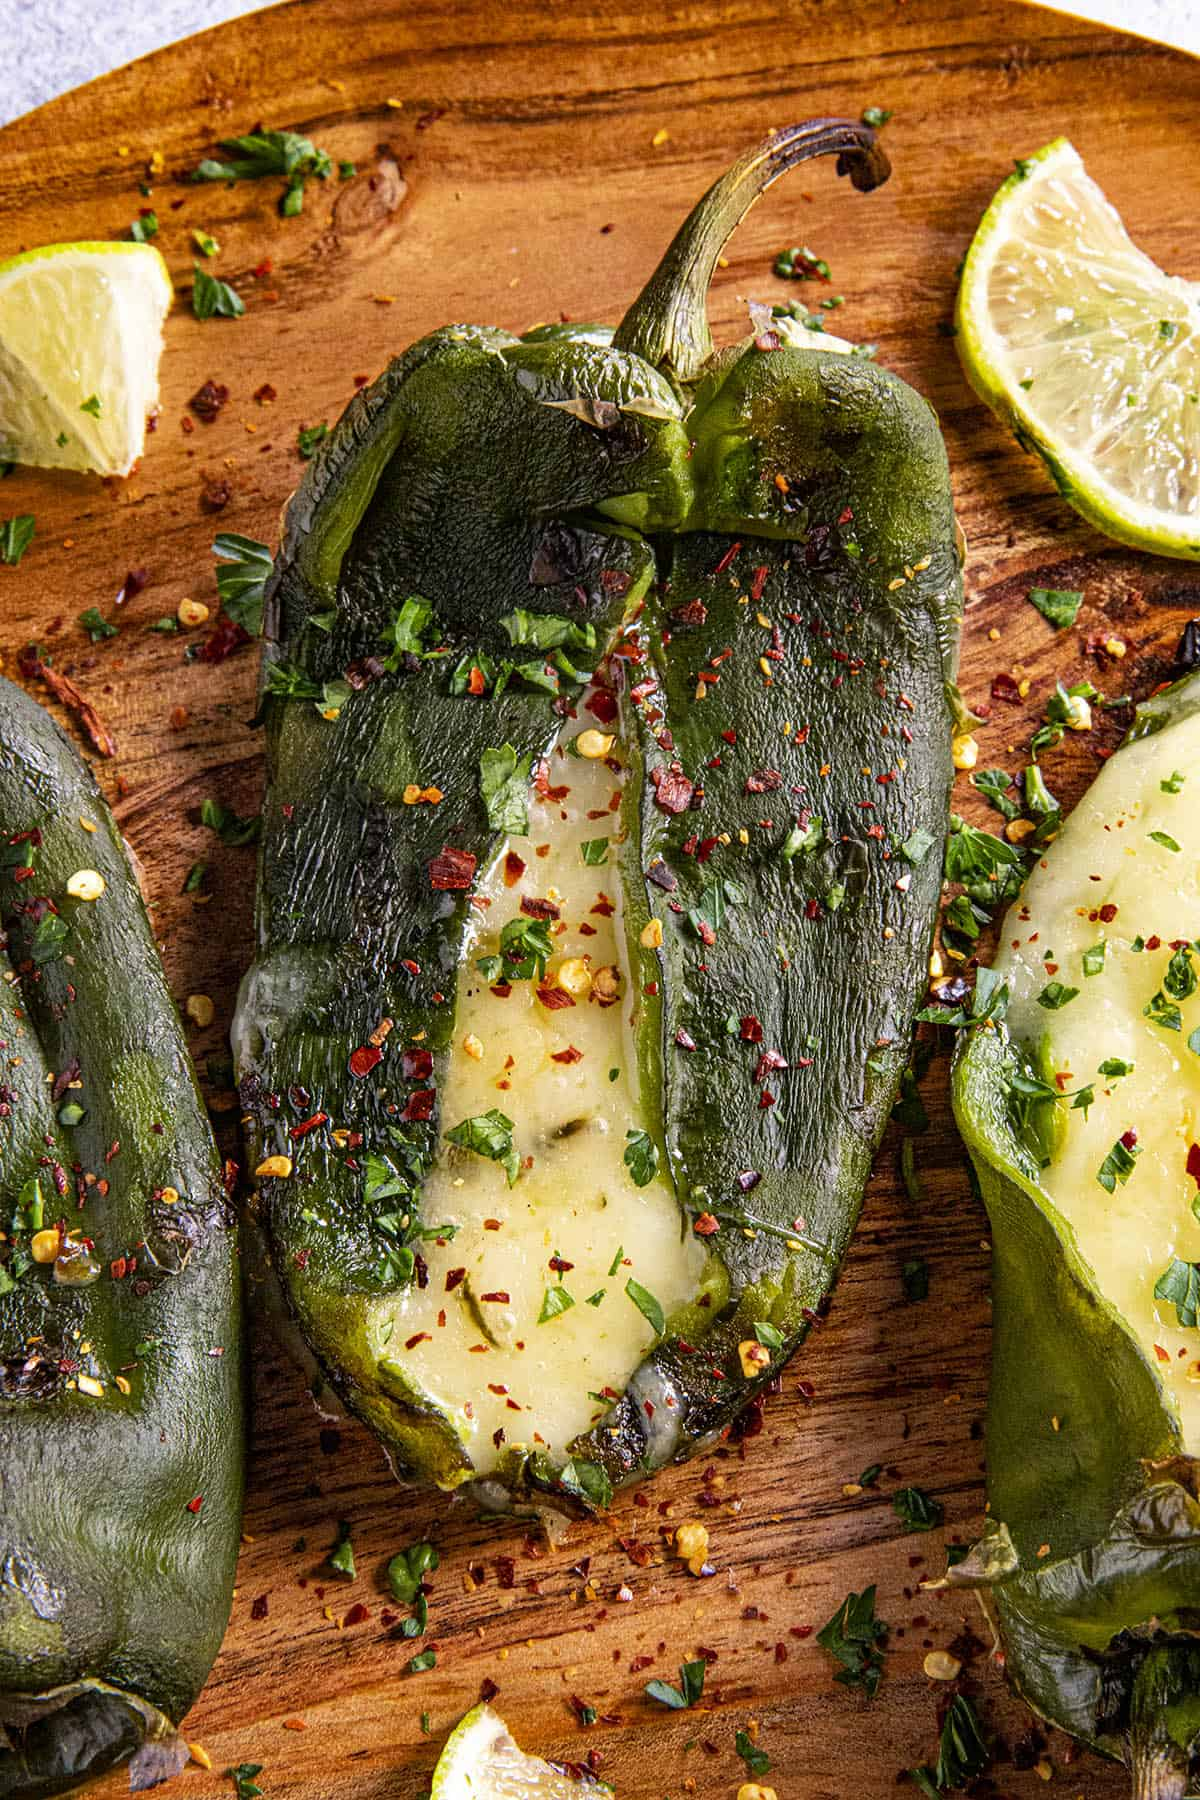 A poblano pepper that has been stuffed with cheese and grilled